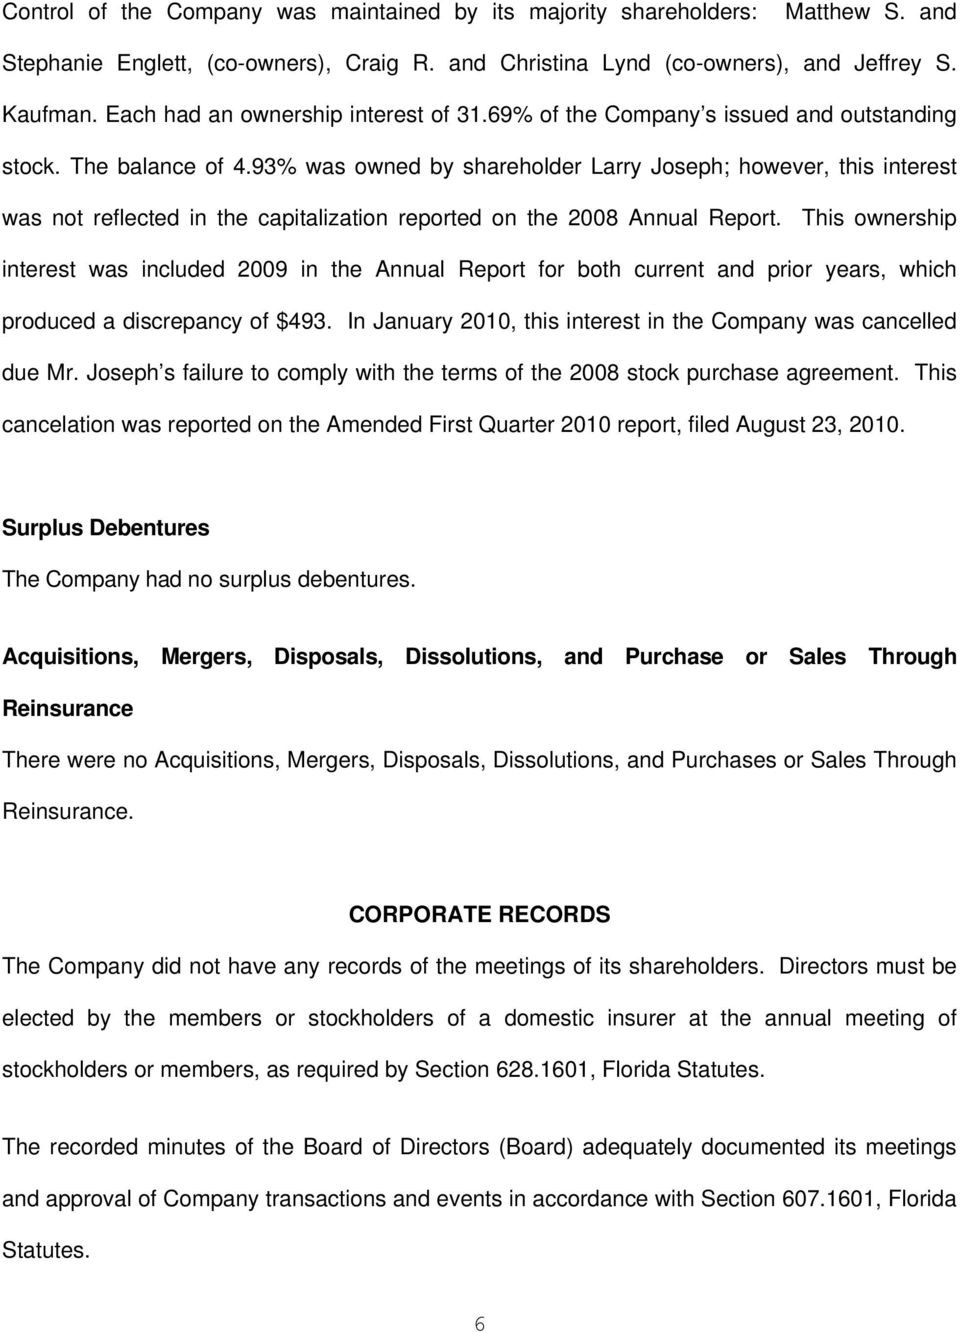 93% was owned by shareholder Larry Joseph; however, this interest was not reflected in the capitalization reported on the 2008 Annual Report.